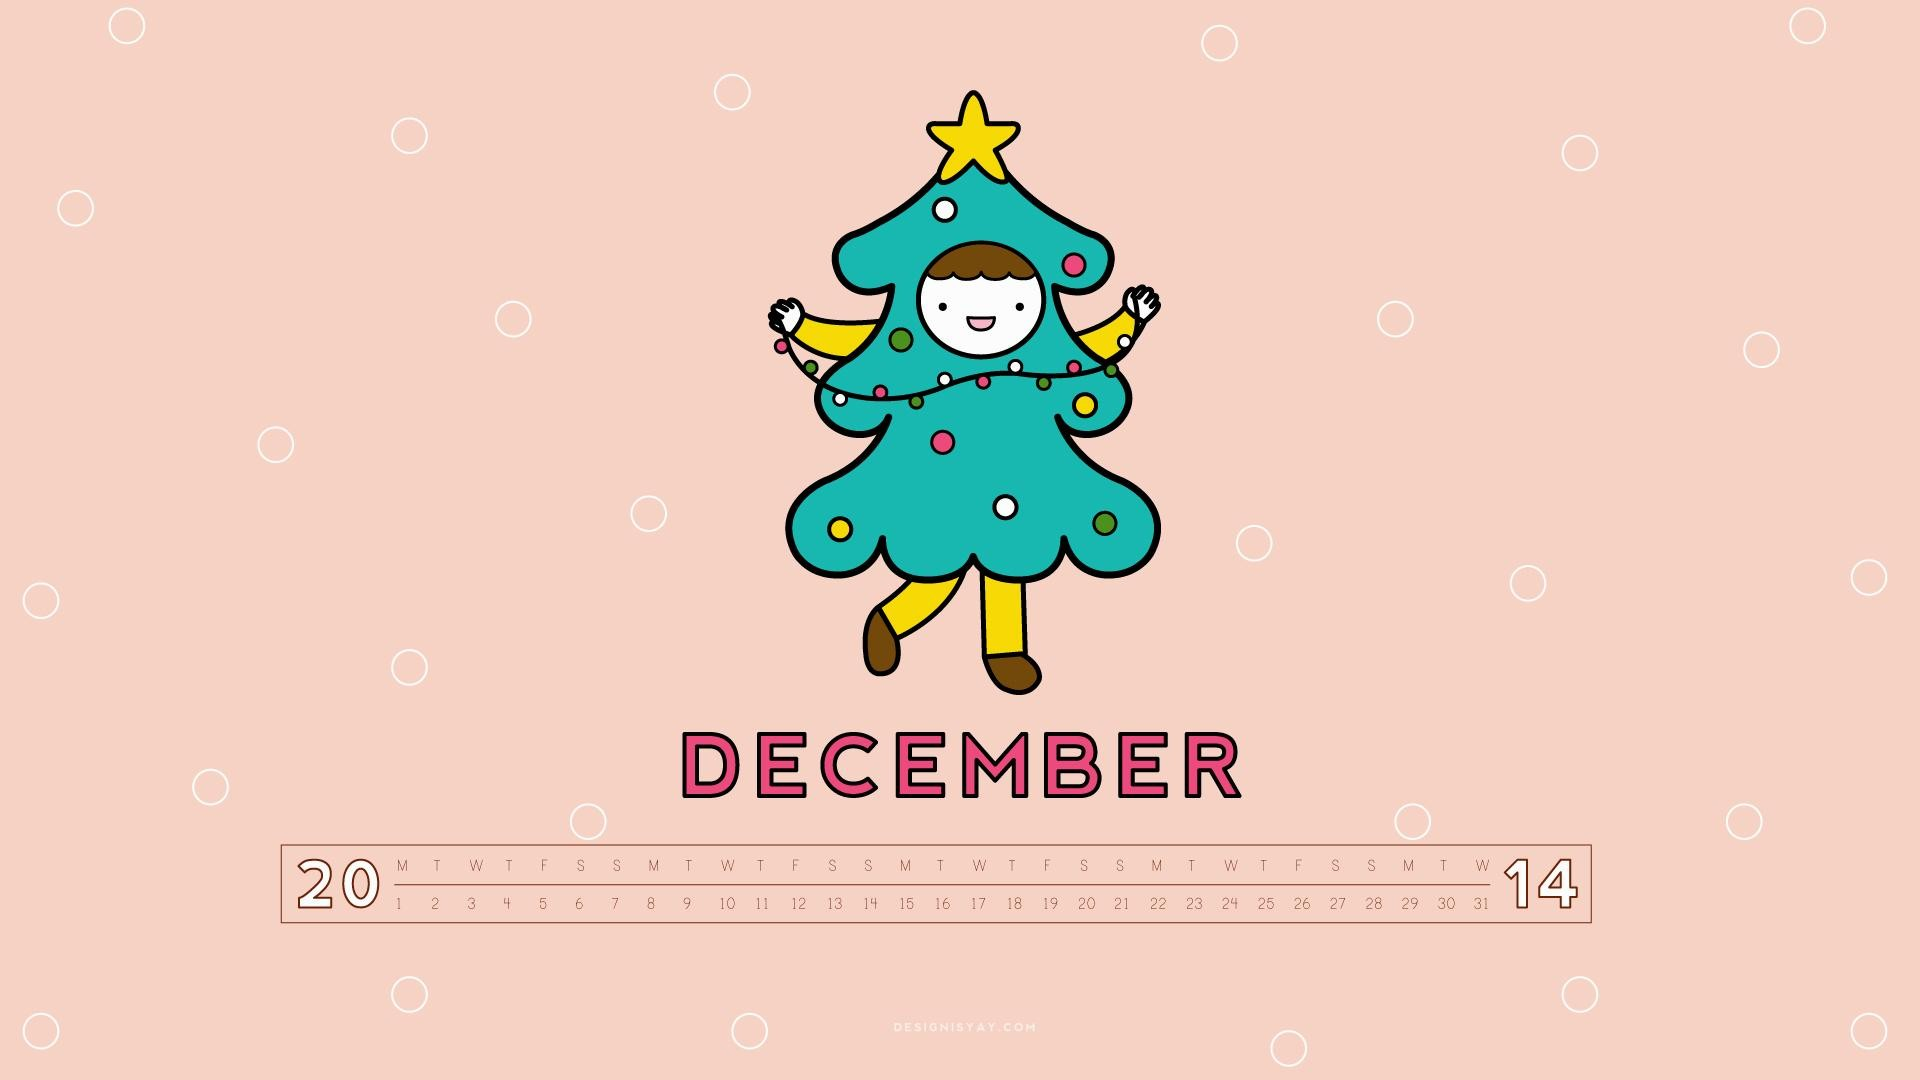 December wallpaper ·① Download free HD backgrounds for ...